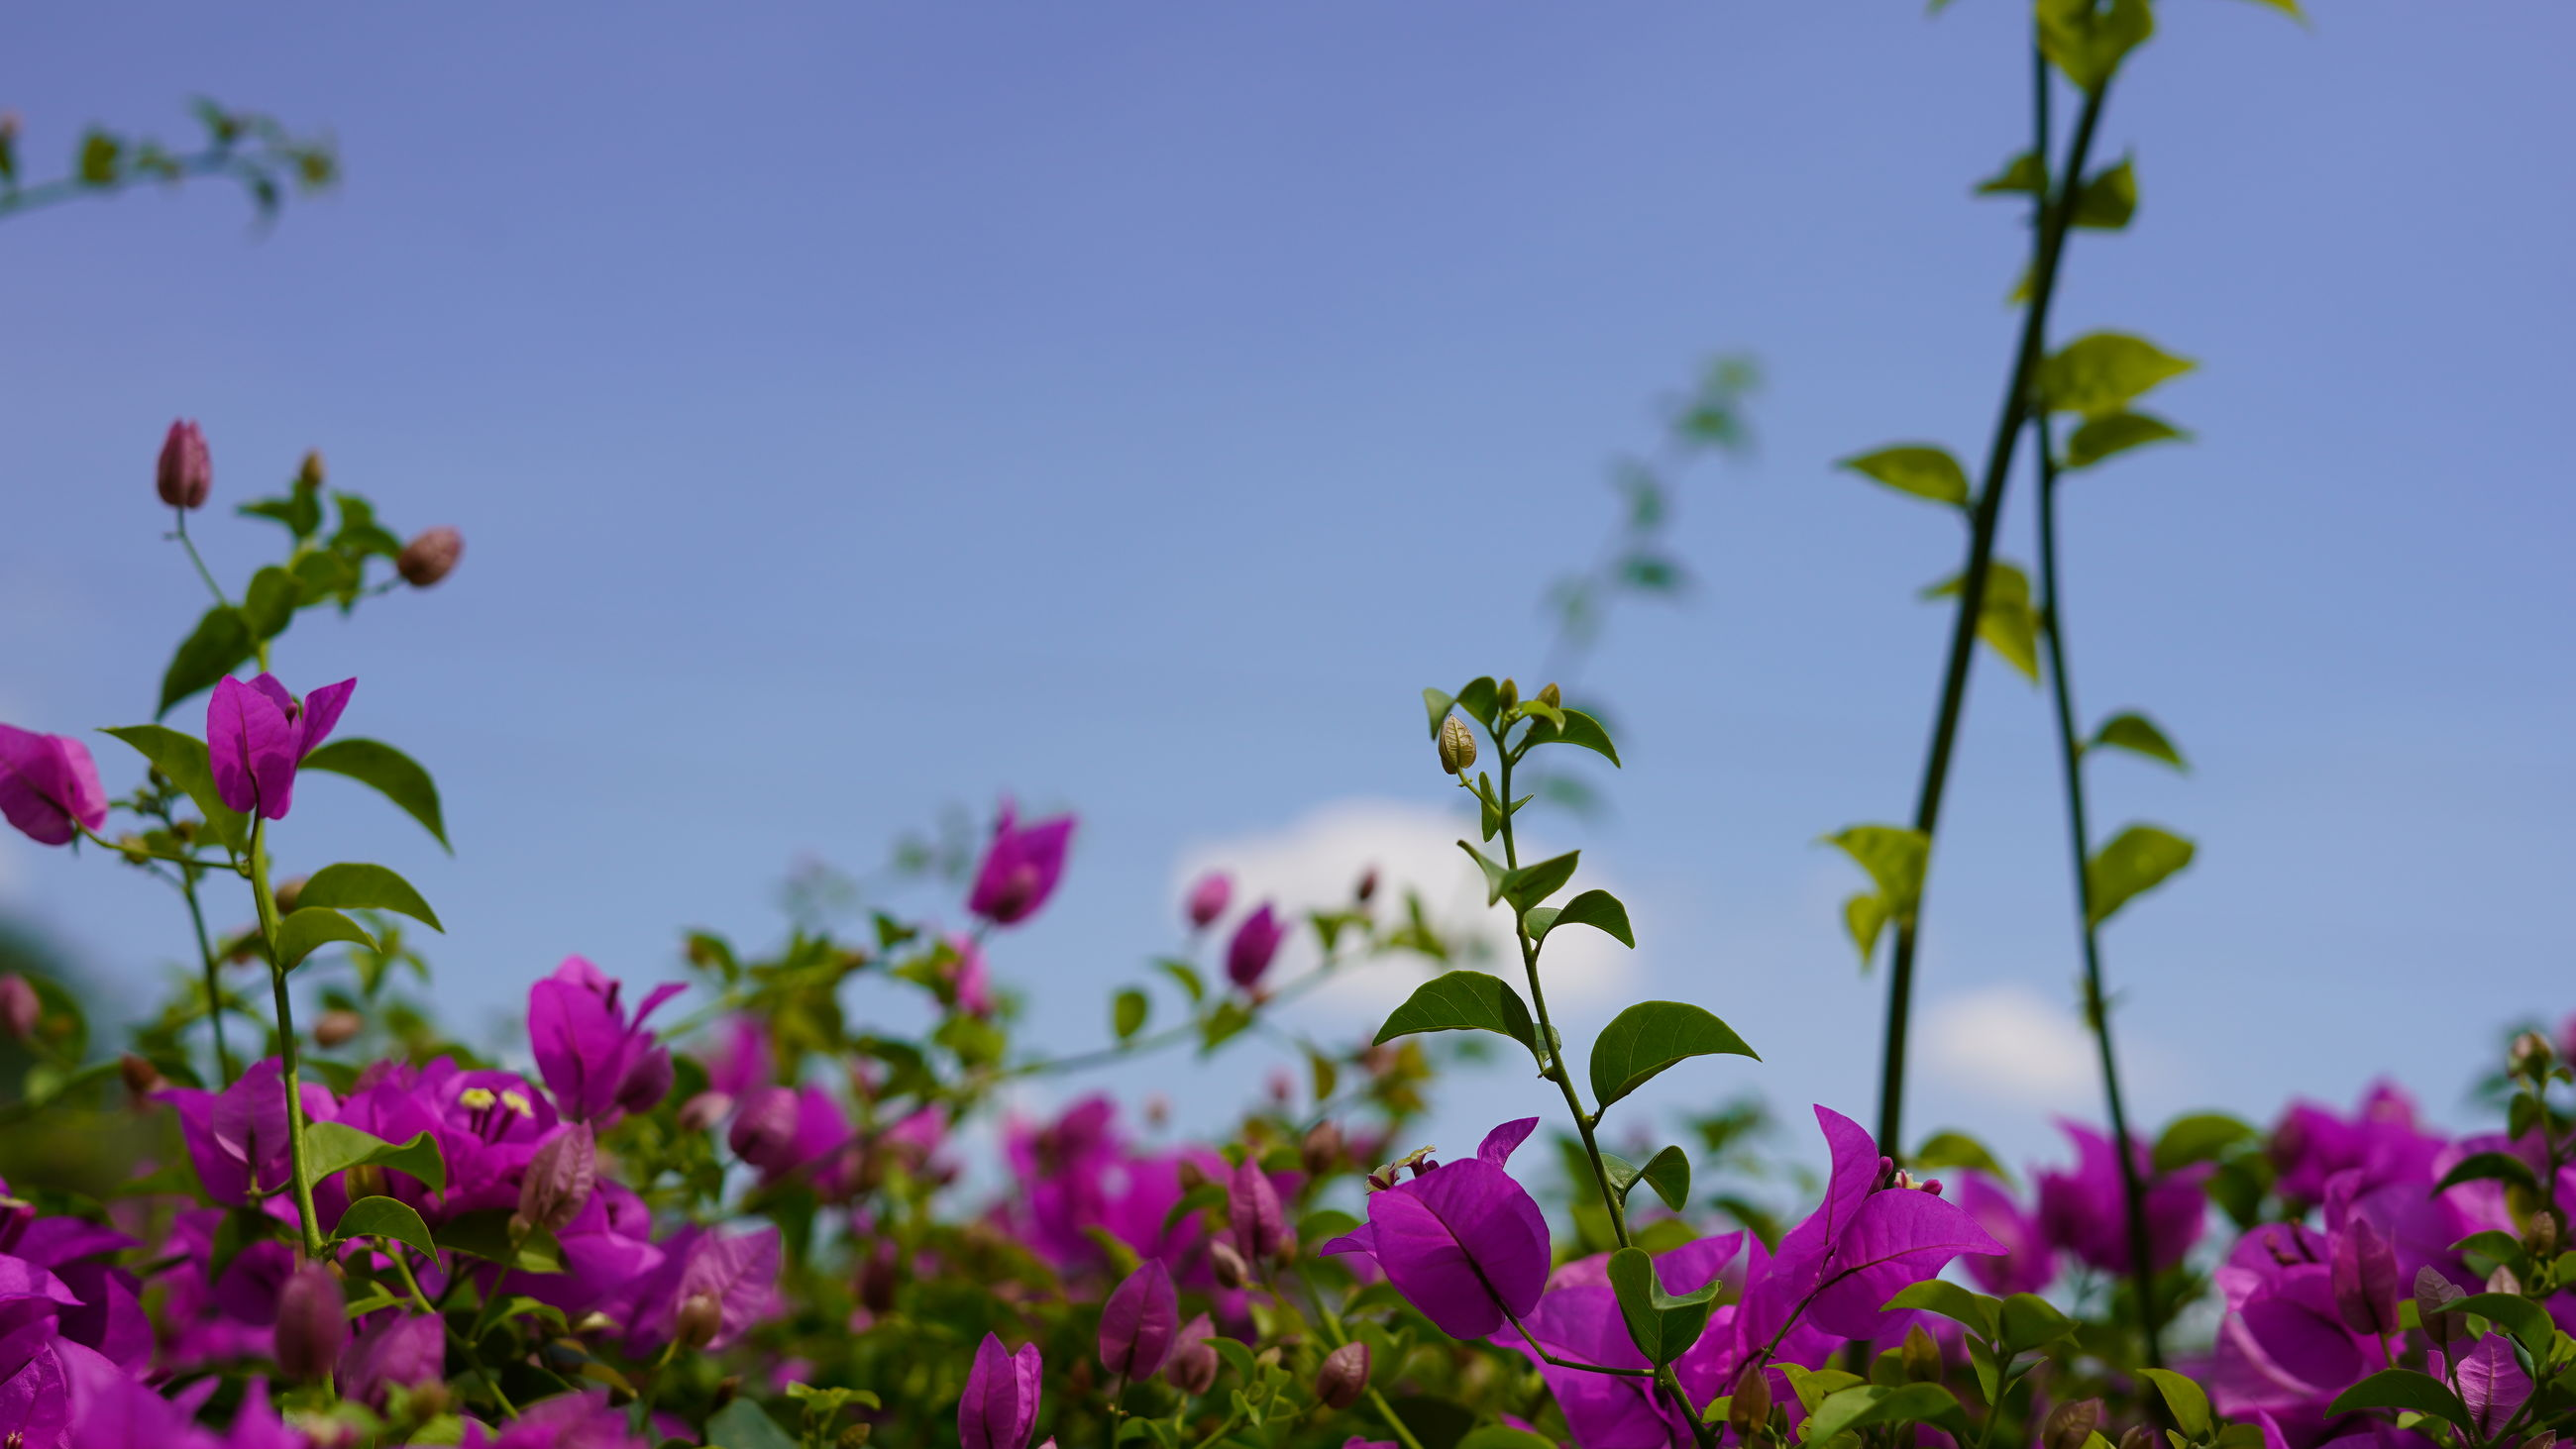 Close-up of pink flowering plants against sky